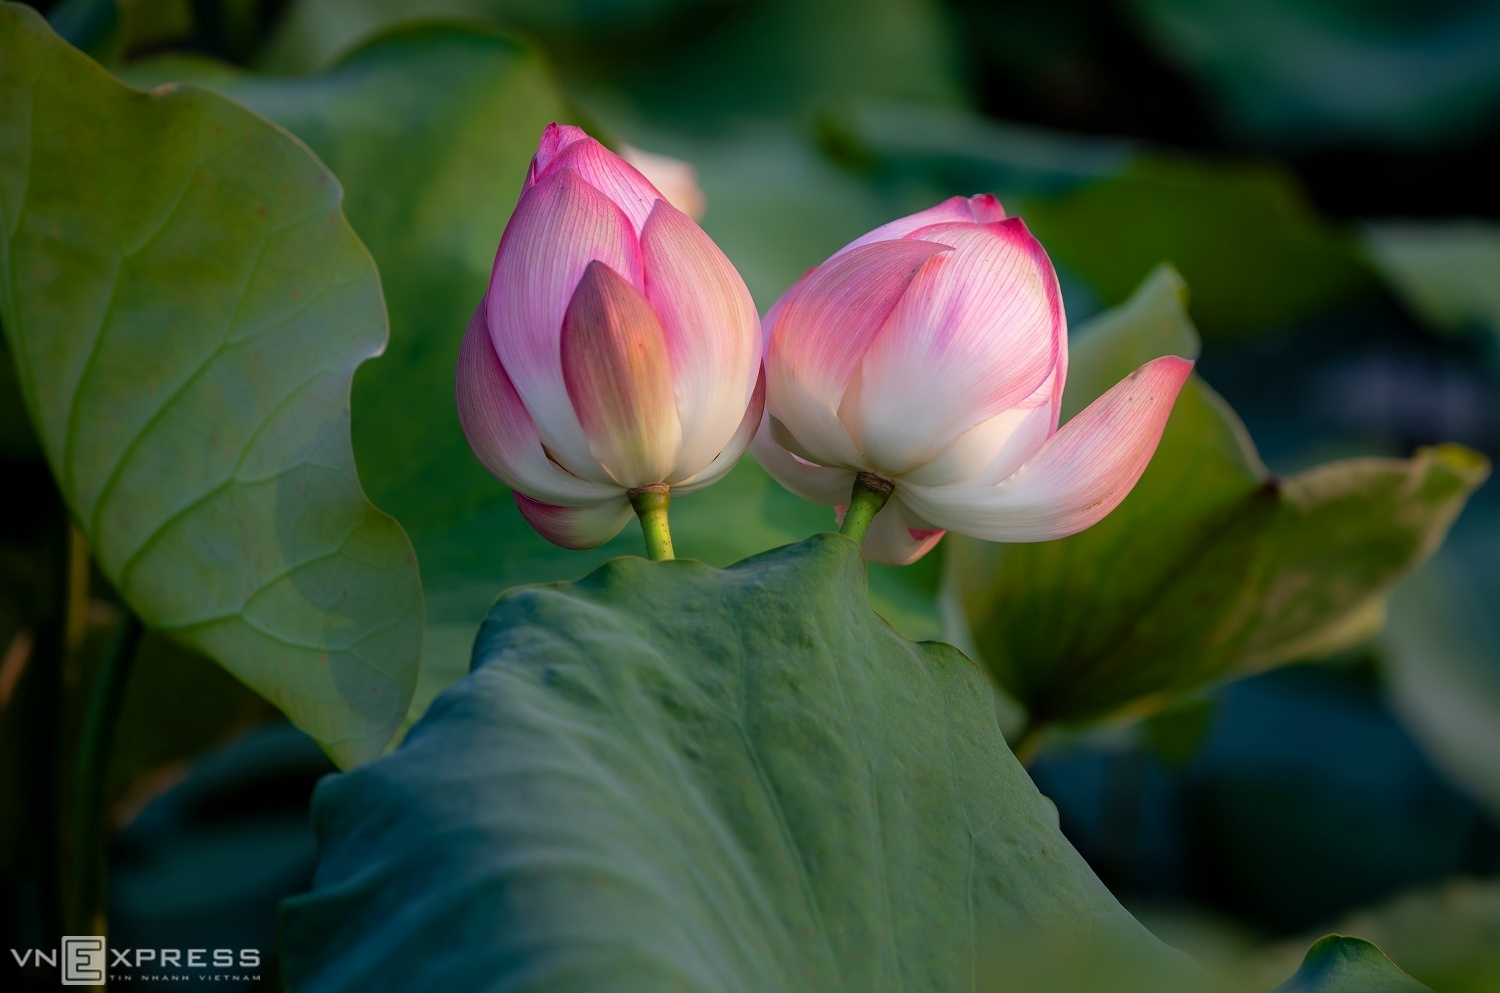 Lotus is the symbol is the symbol of purity and integrity